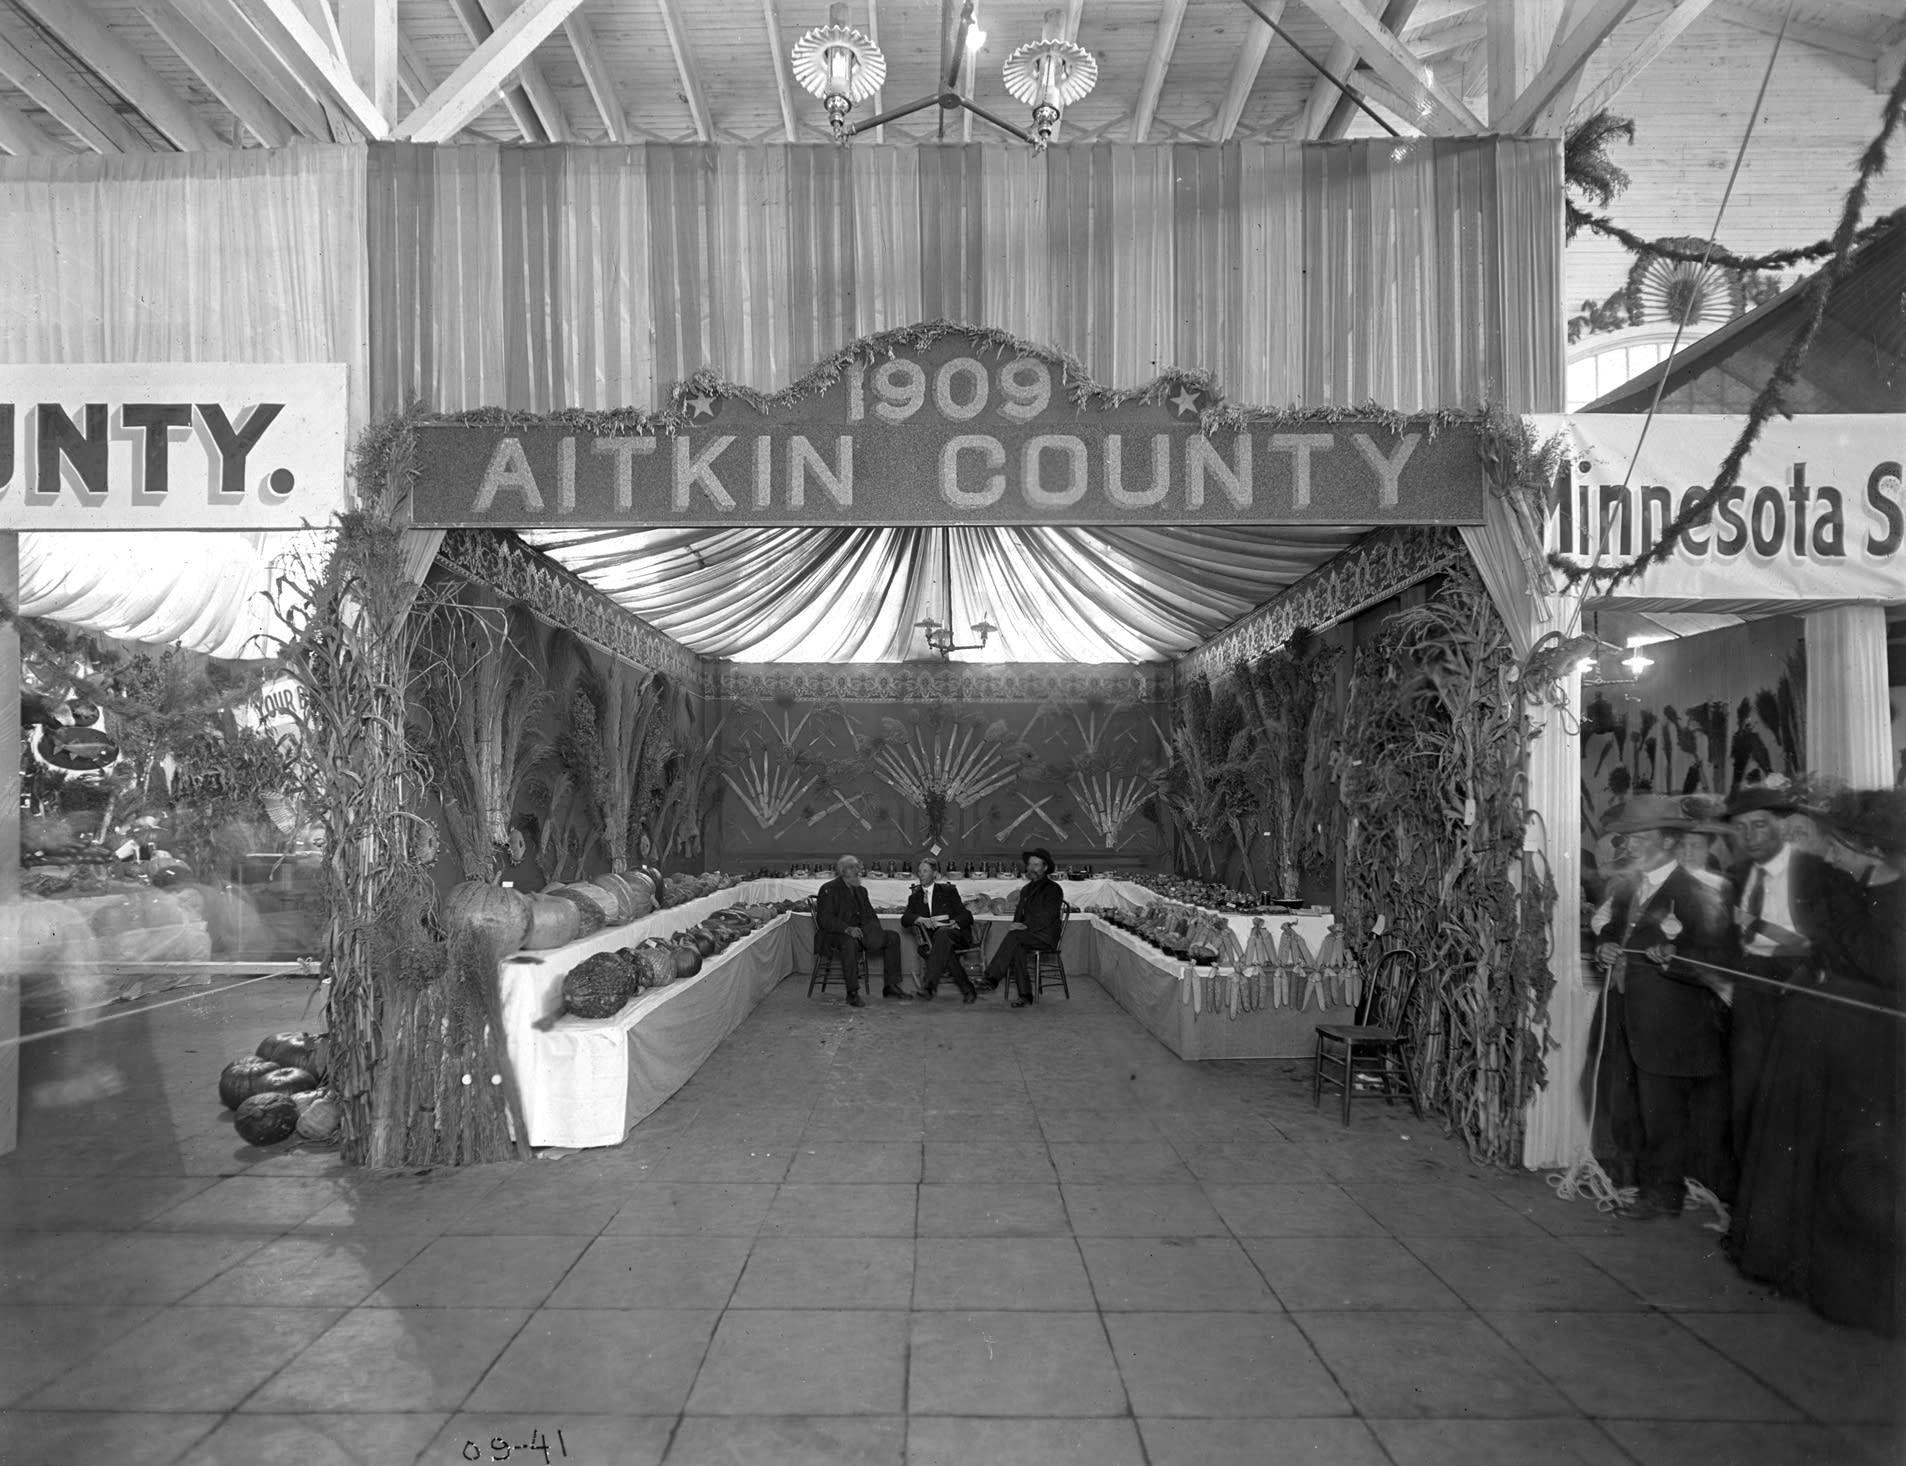 The Aitkin County booth featured corn, large gourds, potatoes in 1909.